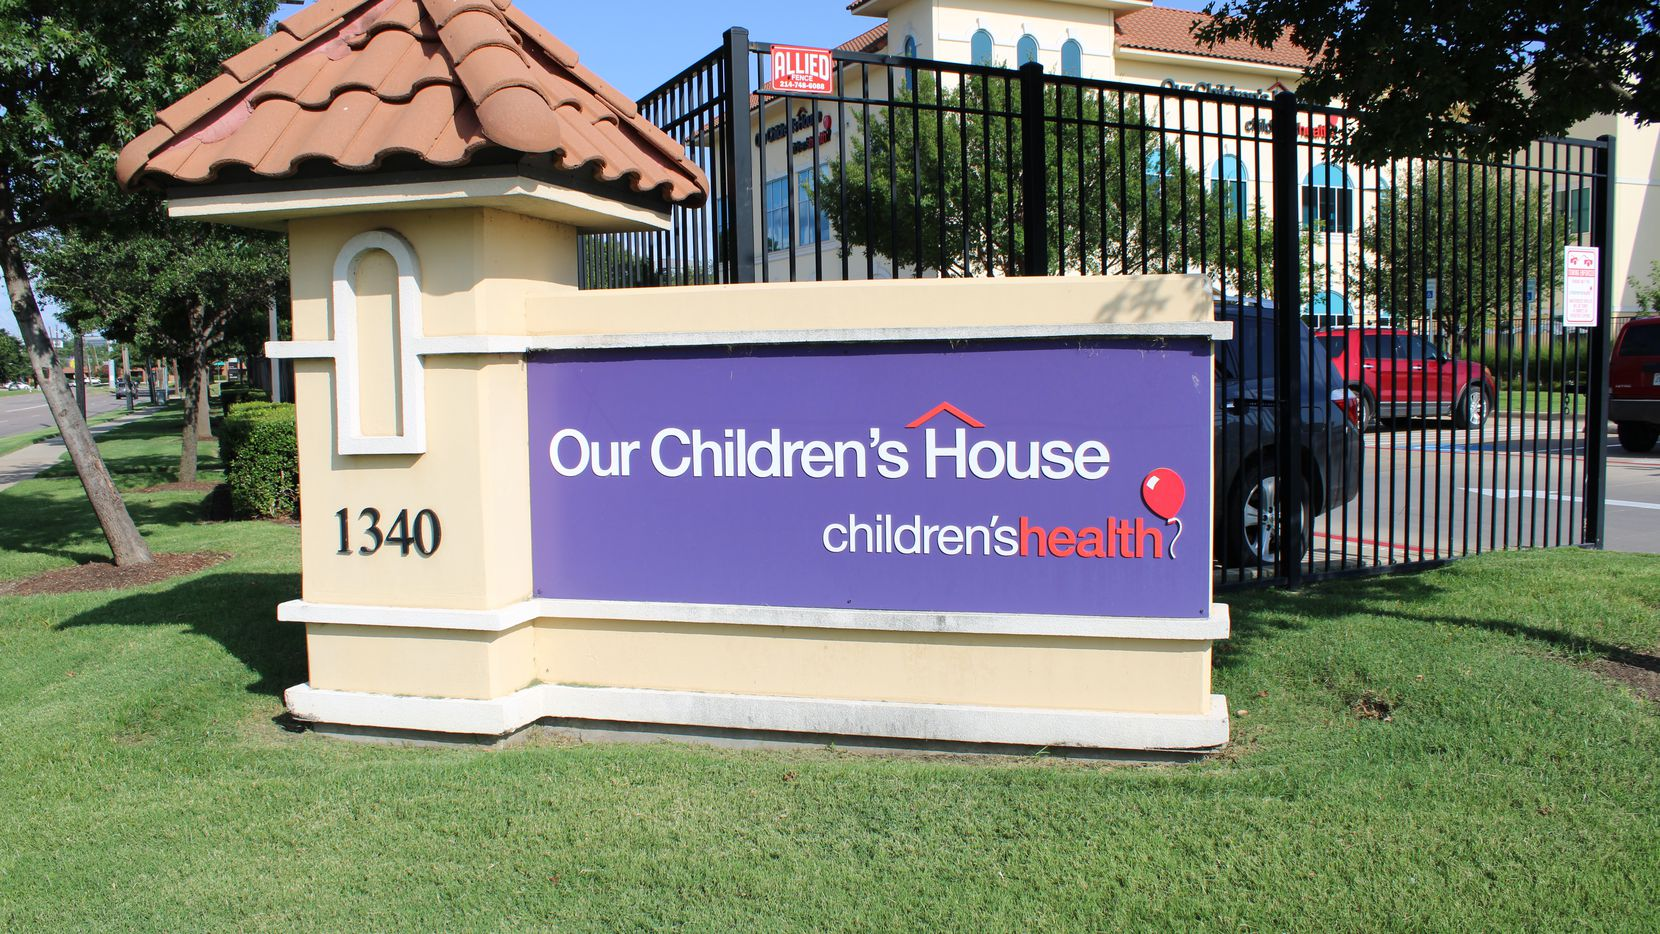 Lylah Baker, 4, is getting special care at Our Children's House Dallas after contracting a rare infection.